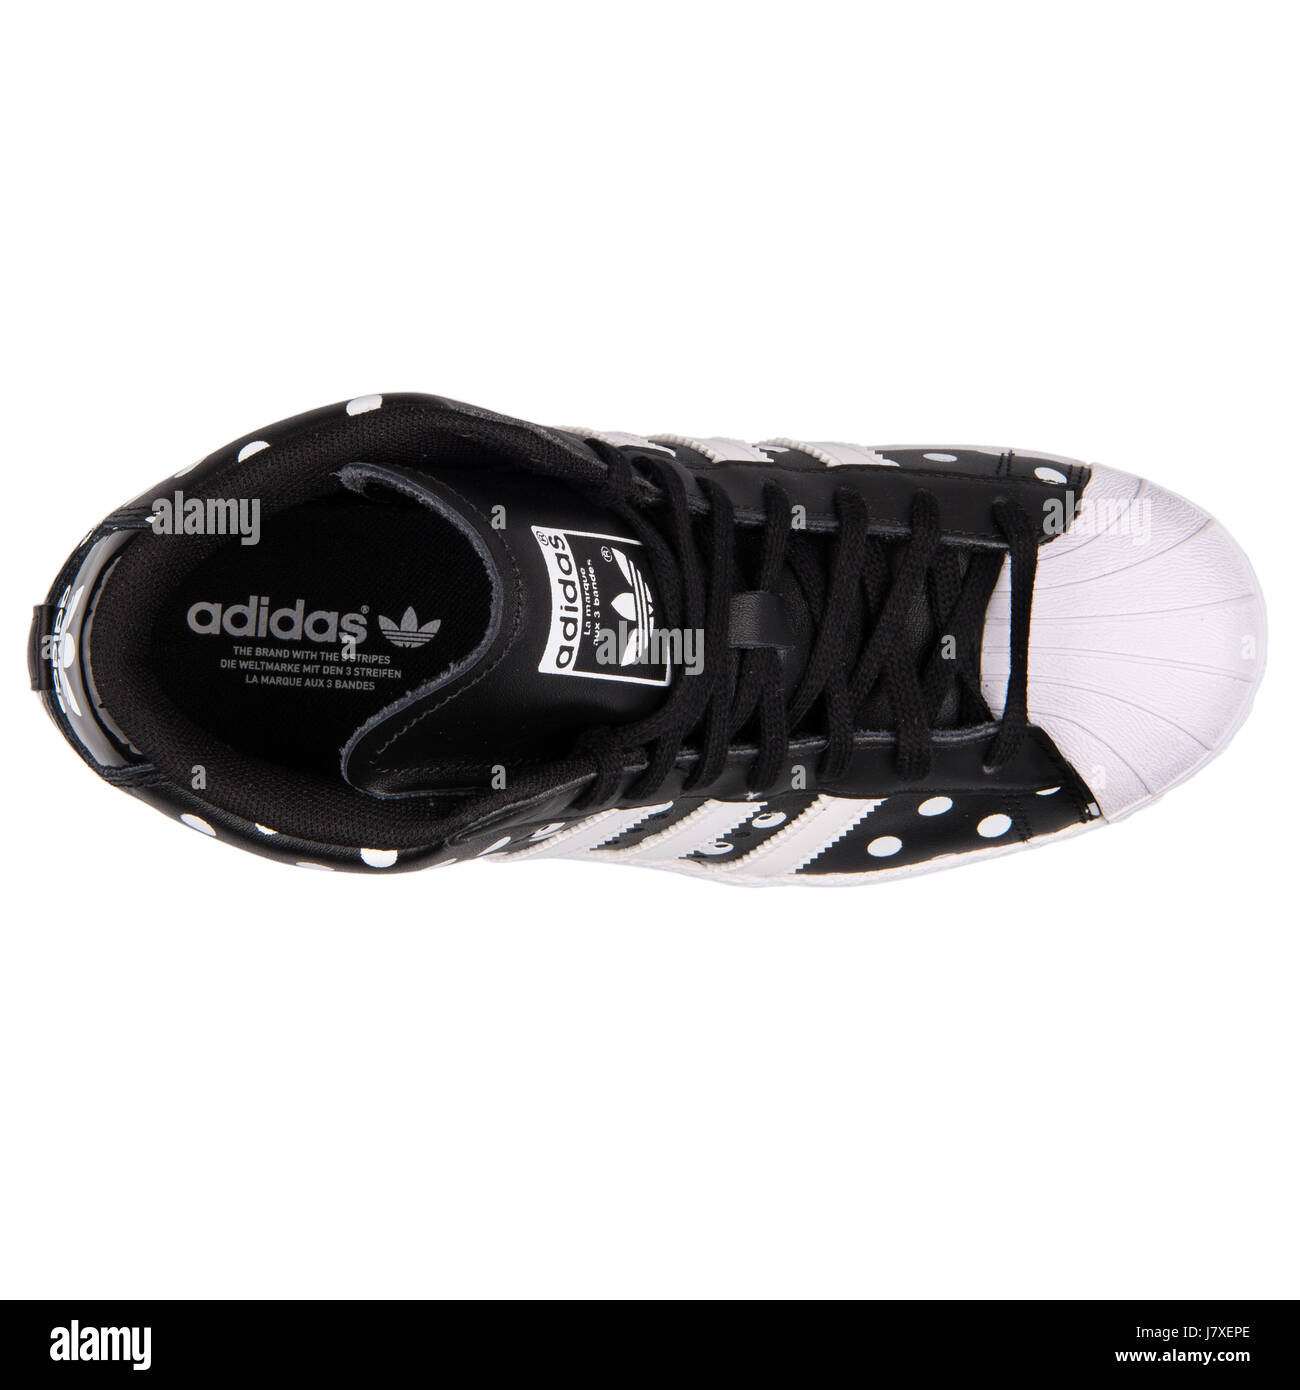 aa7bd109 Adidas Superstar UP W Women's Black With White Dots Sneakers - S81377